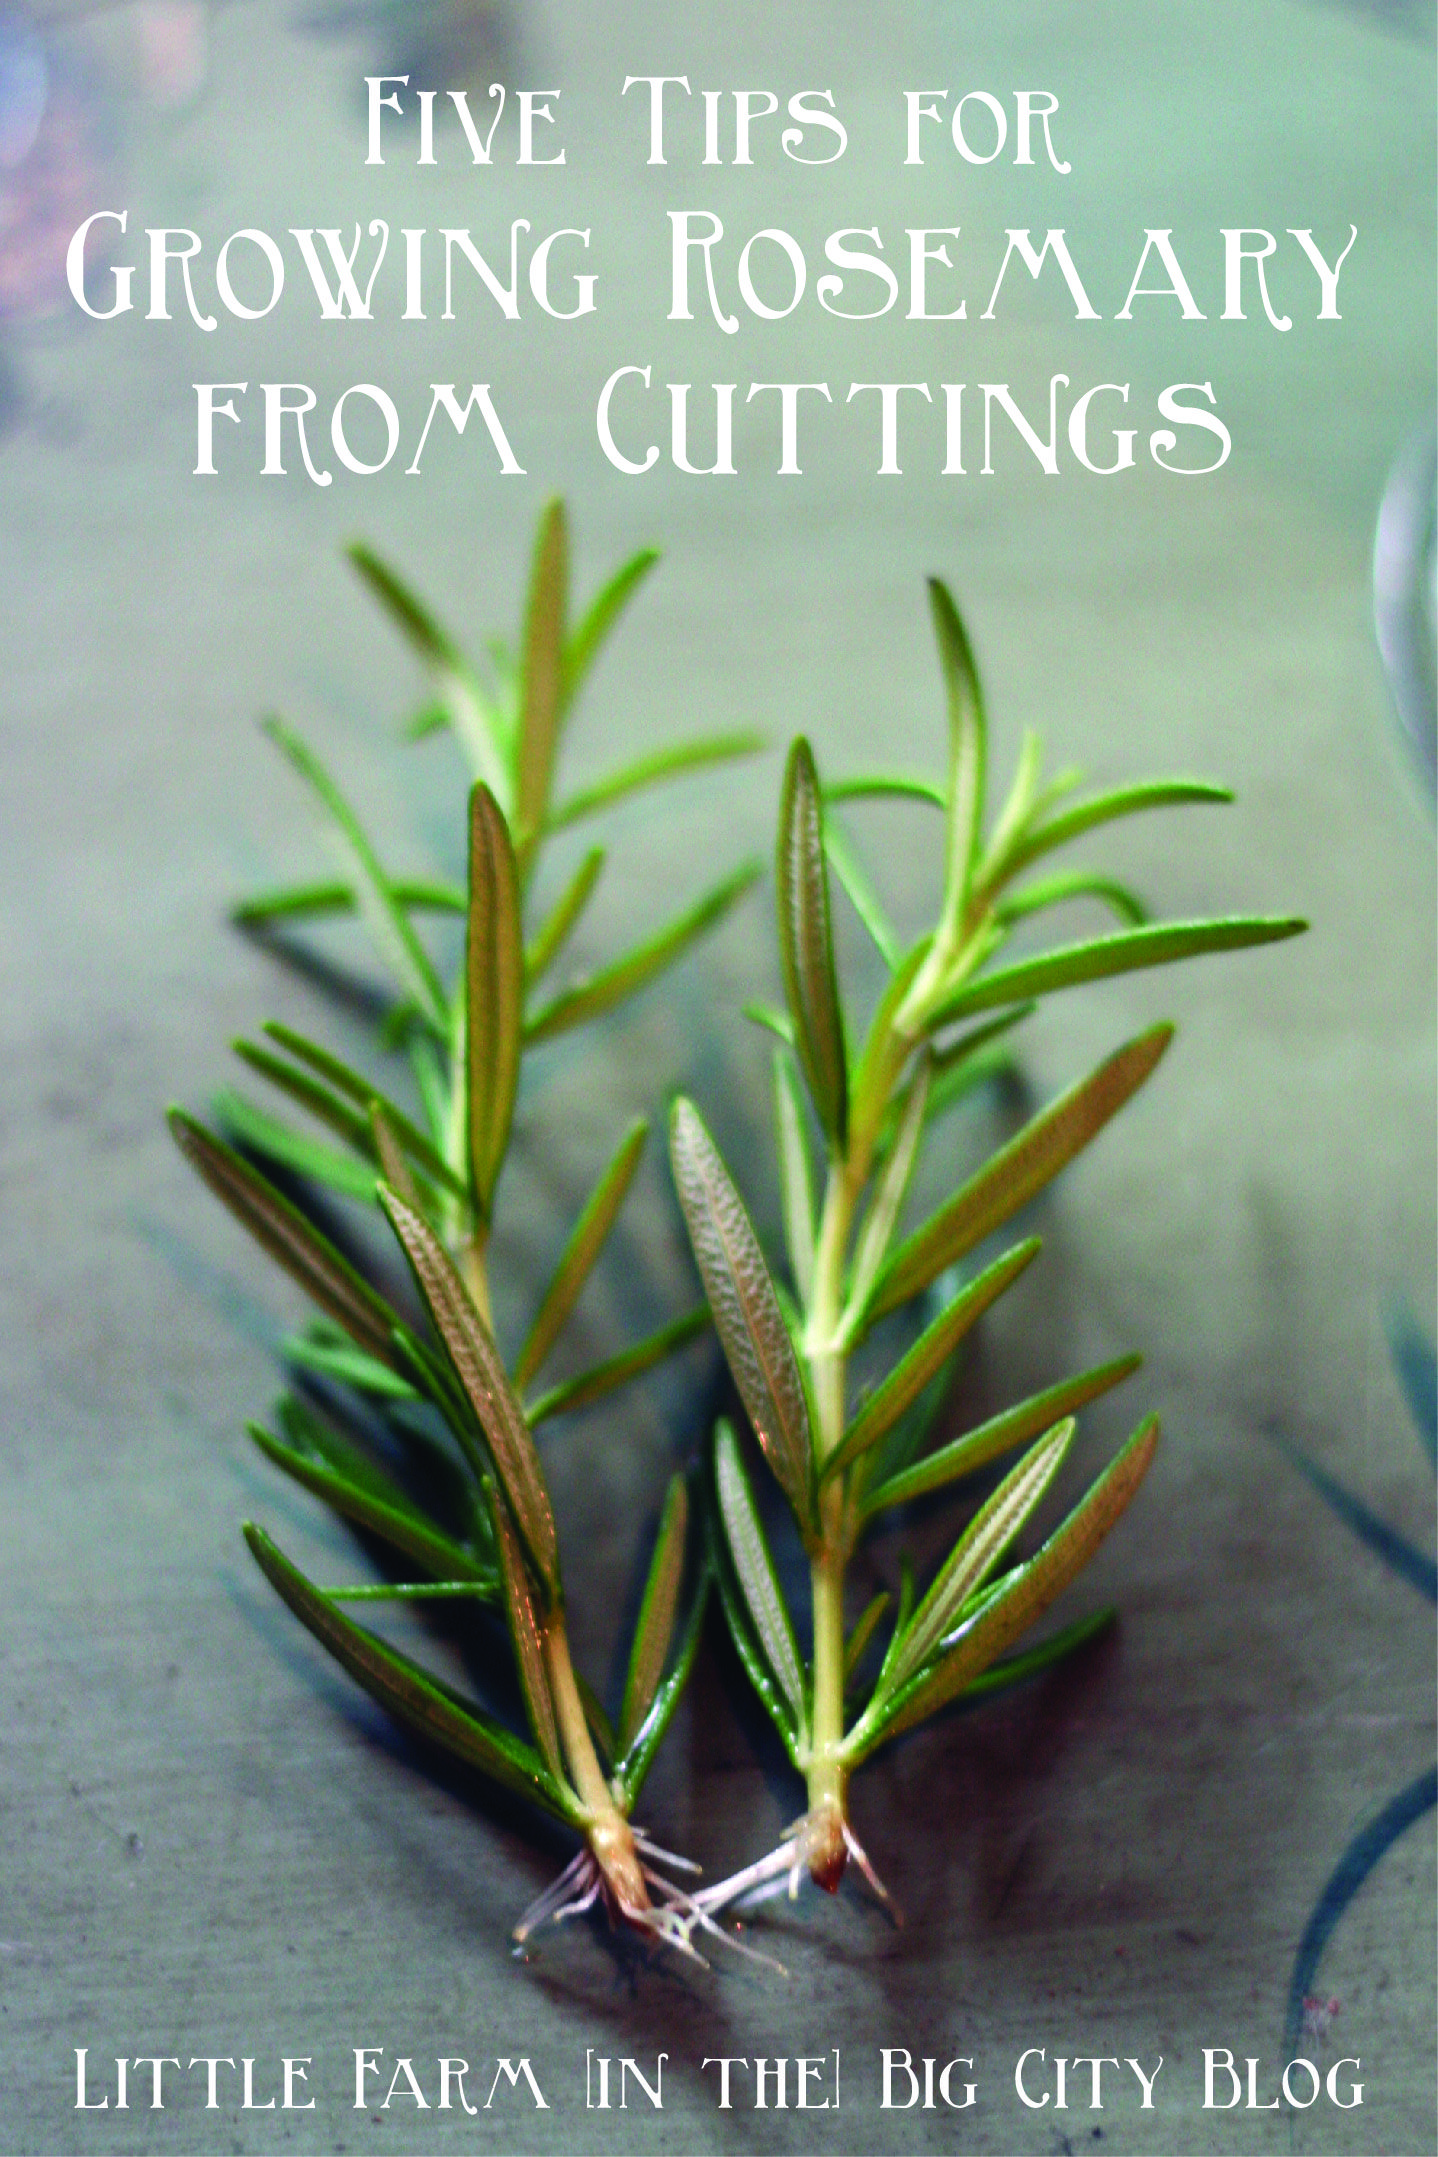 How to Grow Rosemary from Cuttings – 5 Tips